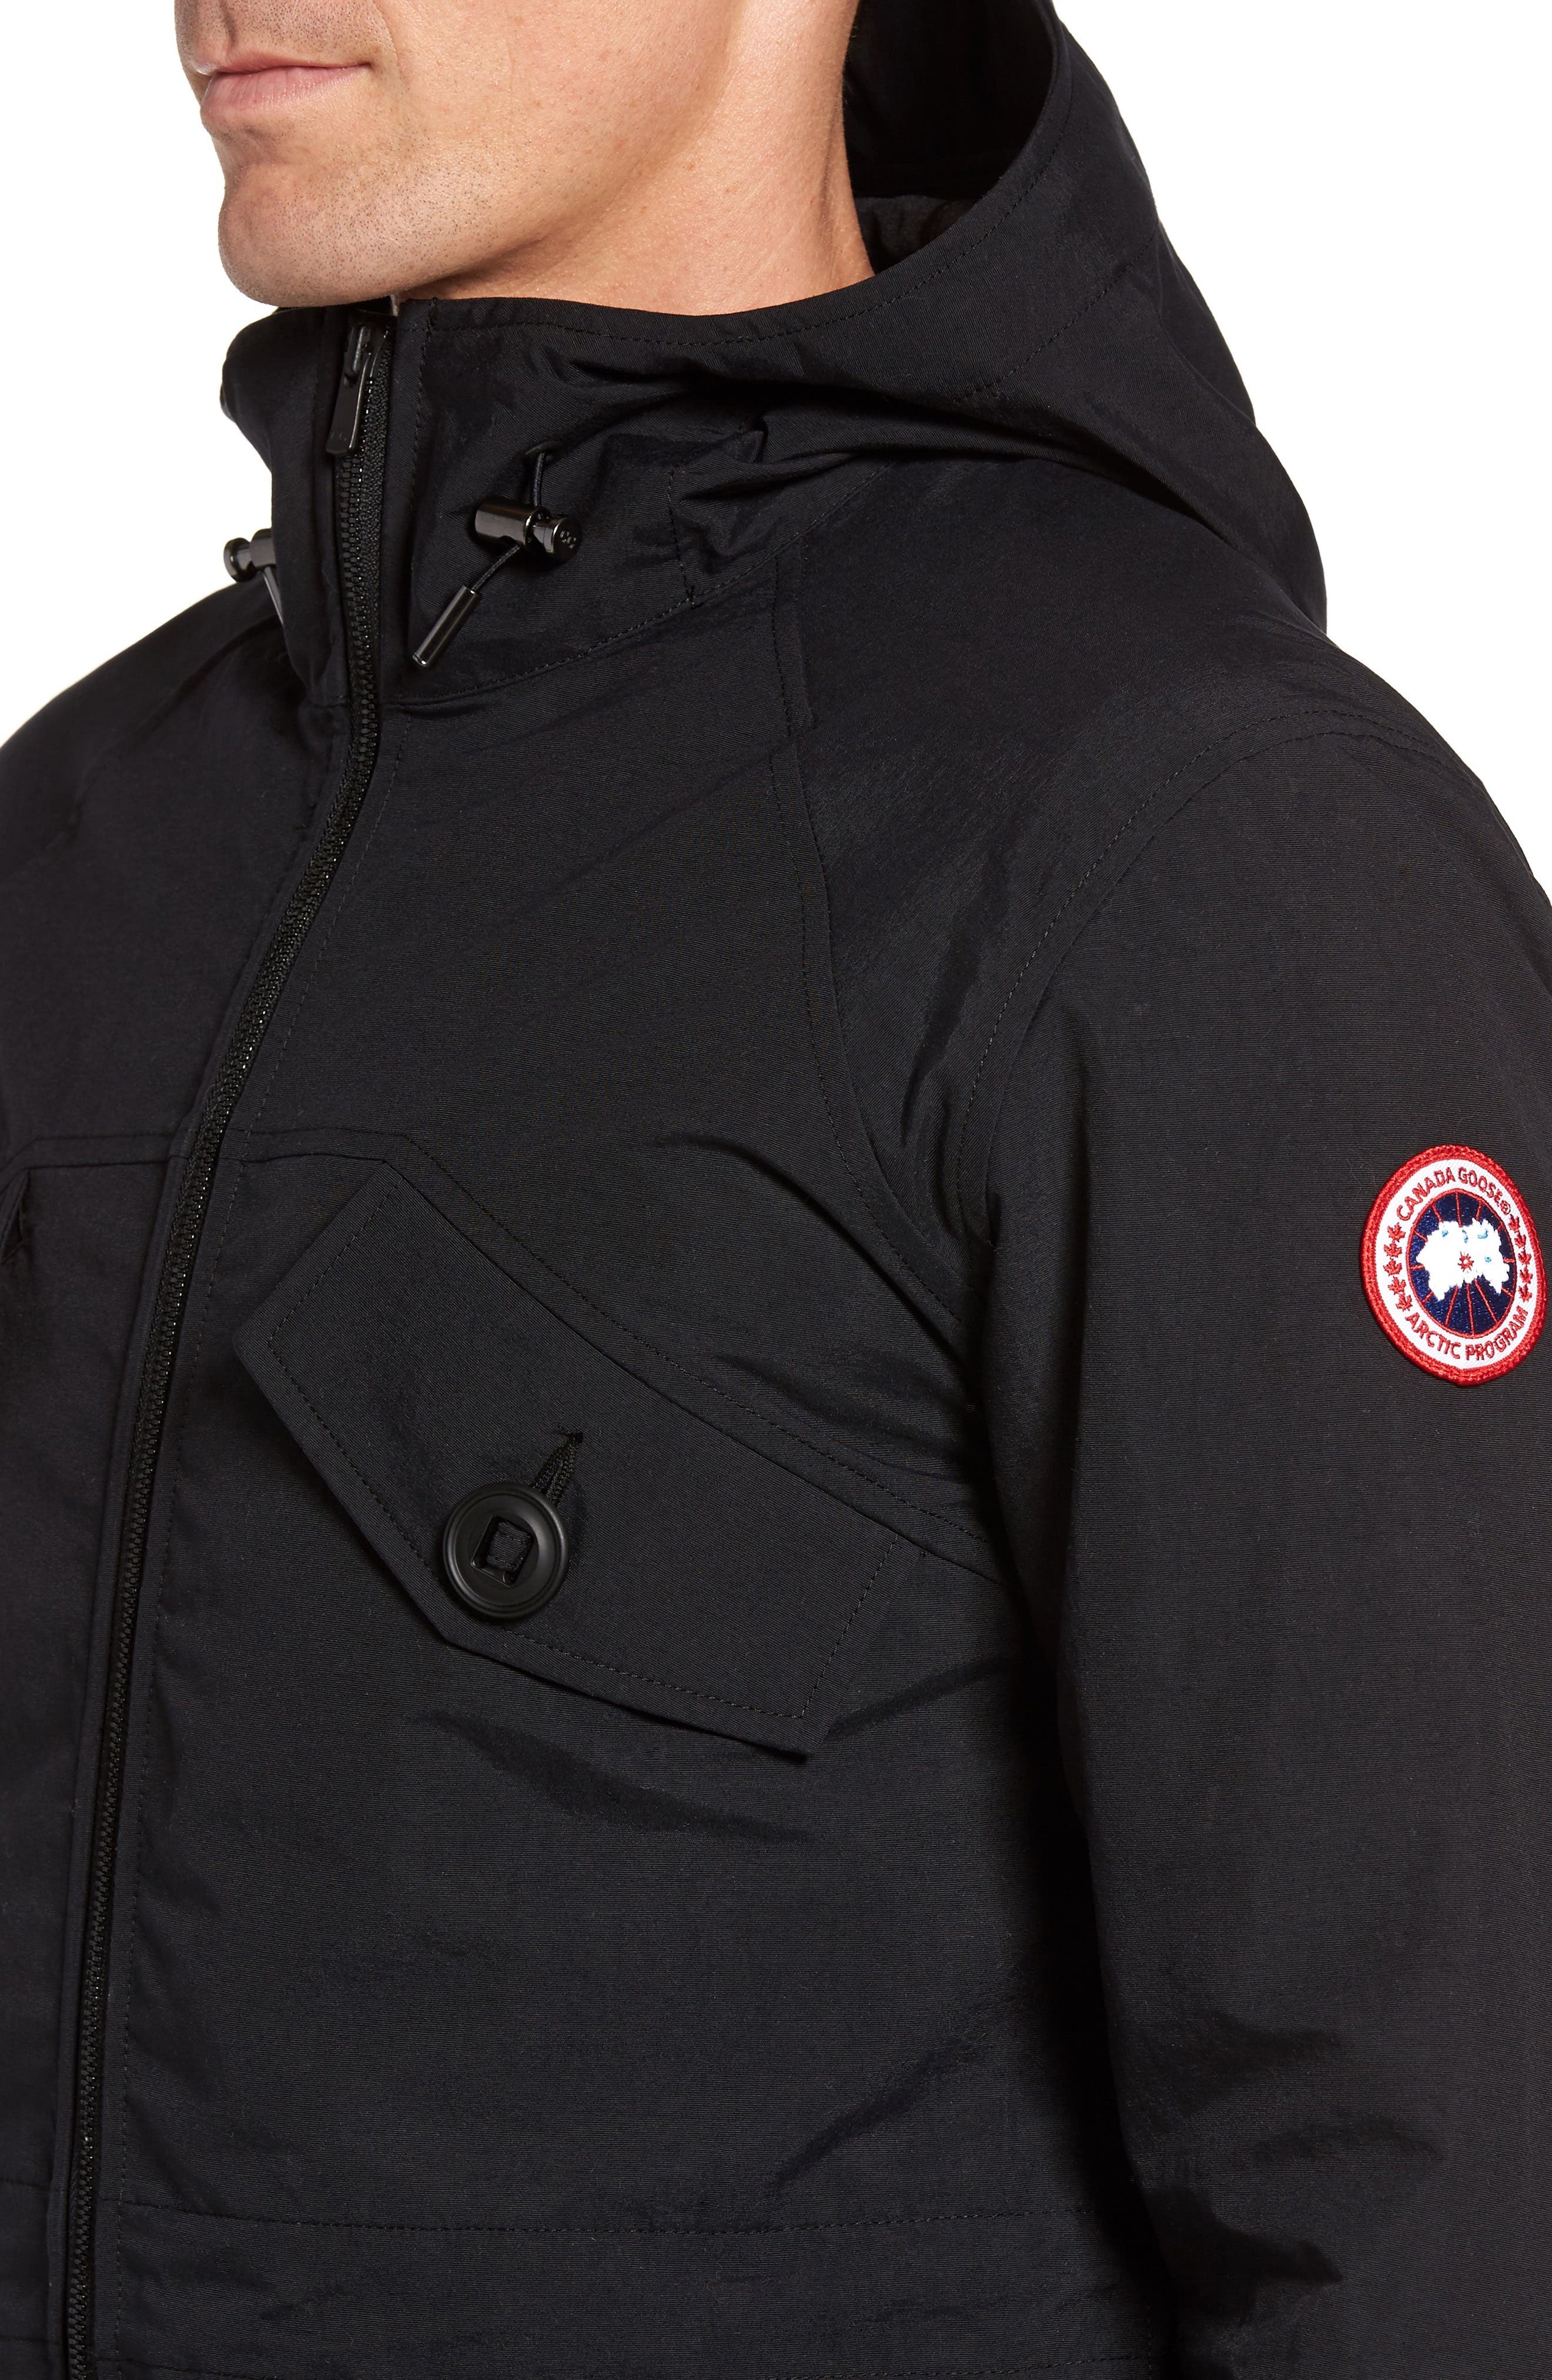 CANADA GOOSE,                             Redstone Slim Fit Hooded Jacket,                             Alternate thumbnail 4, color,                             001